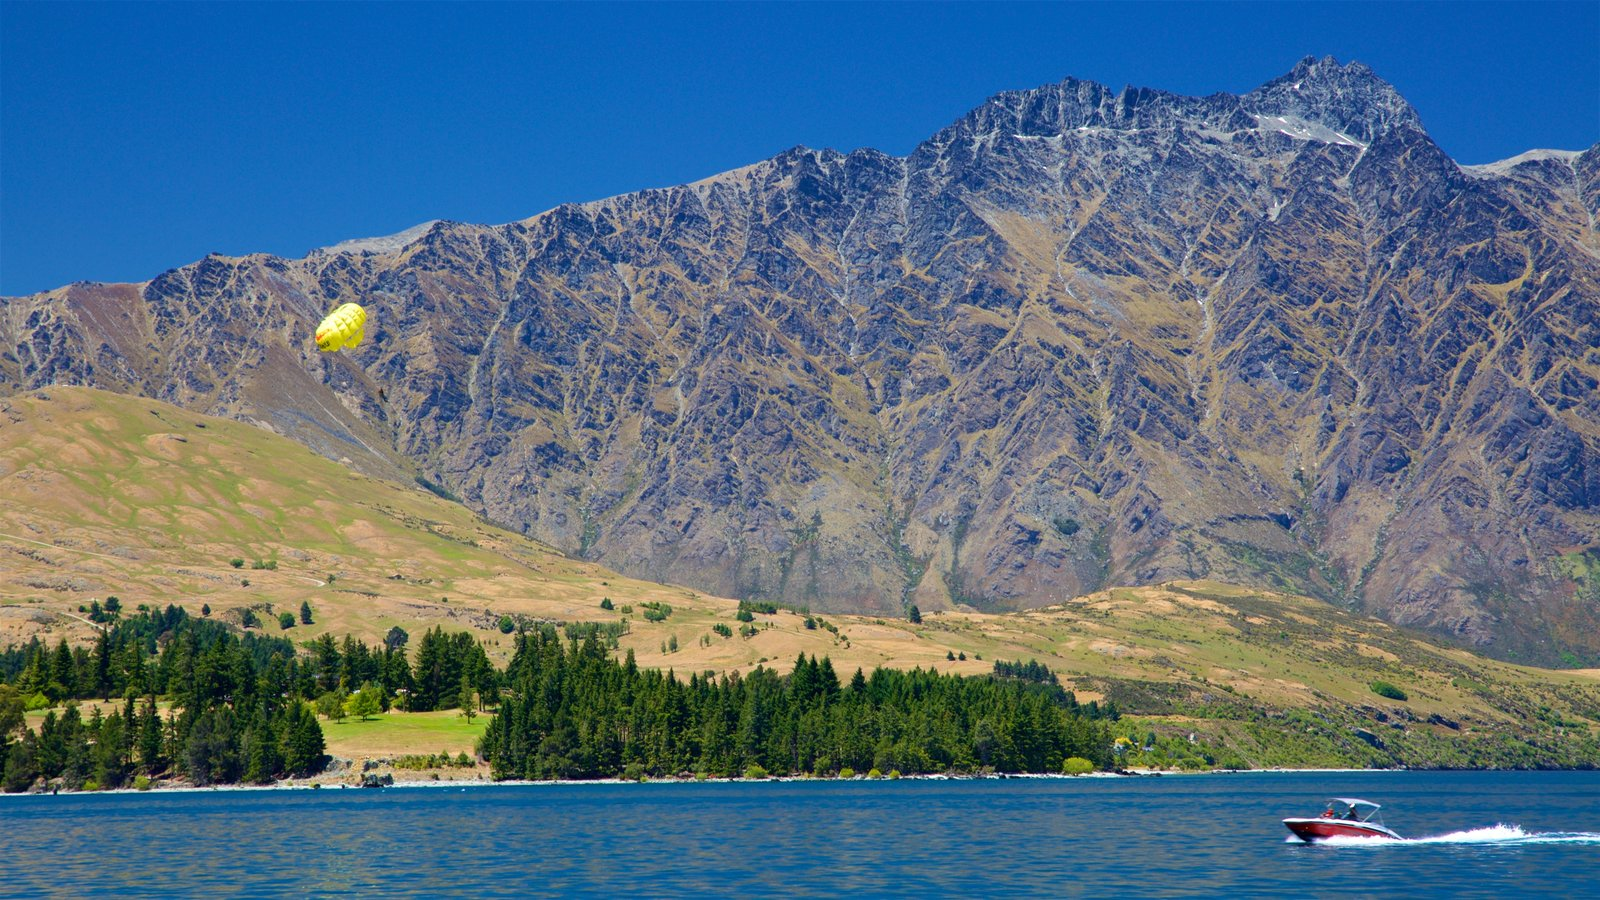 The Remarkables Ski Area which includes mountains, parasailing and a lake or waterhole